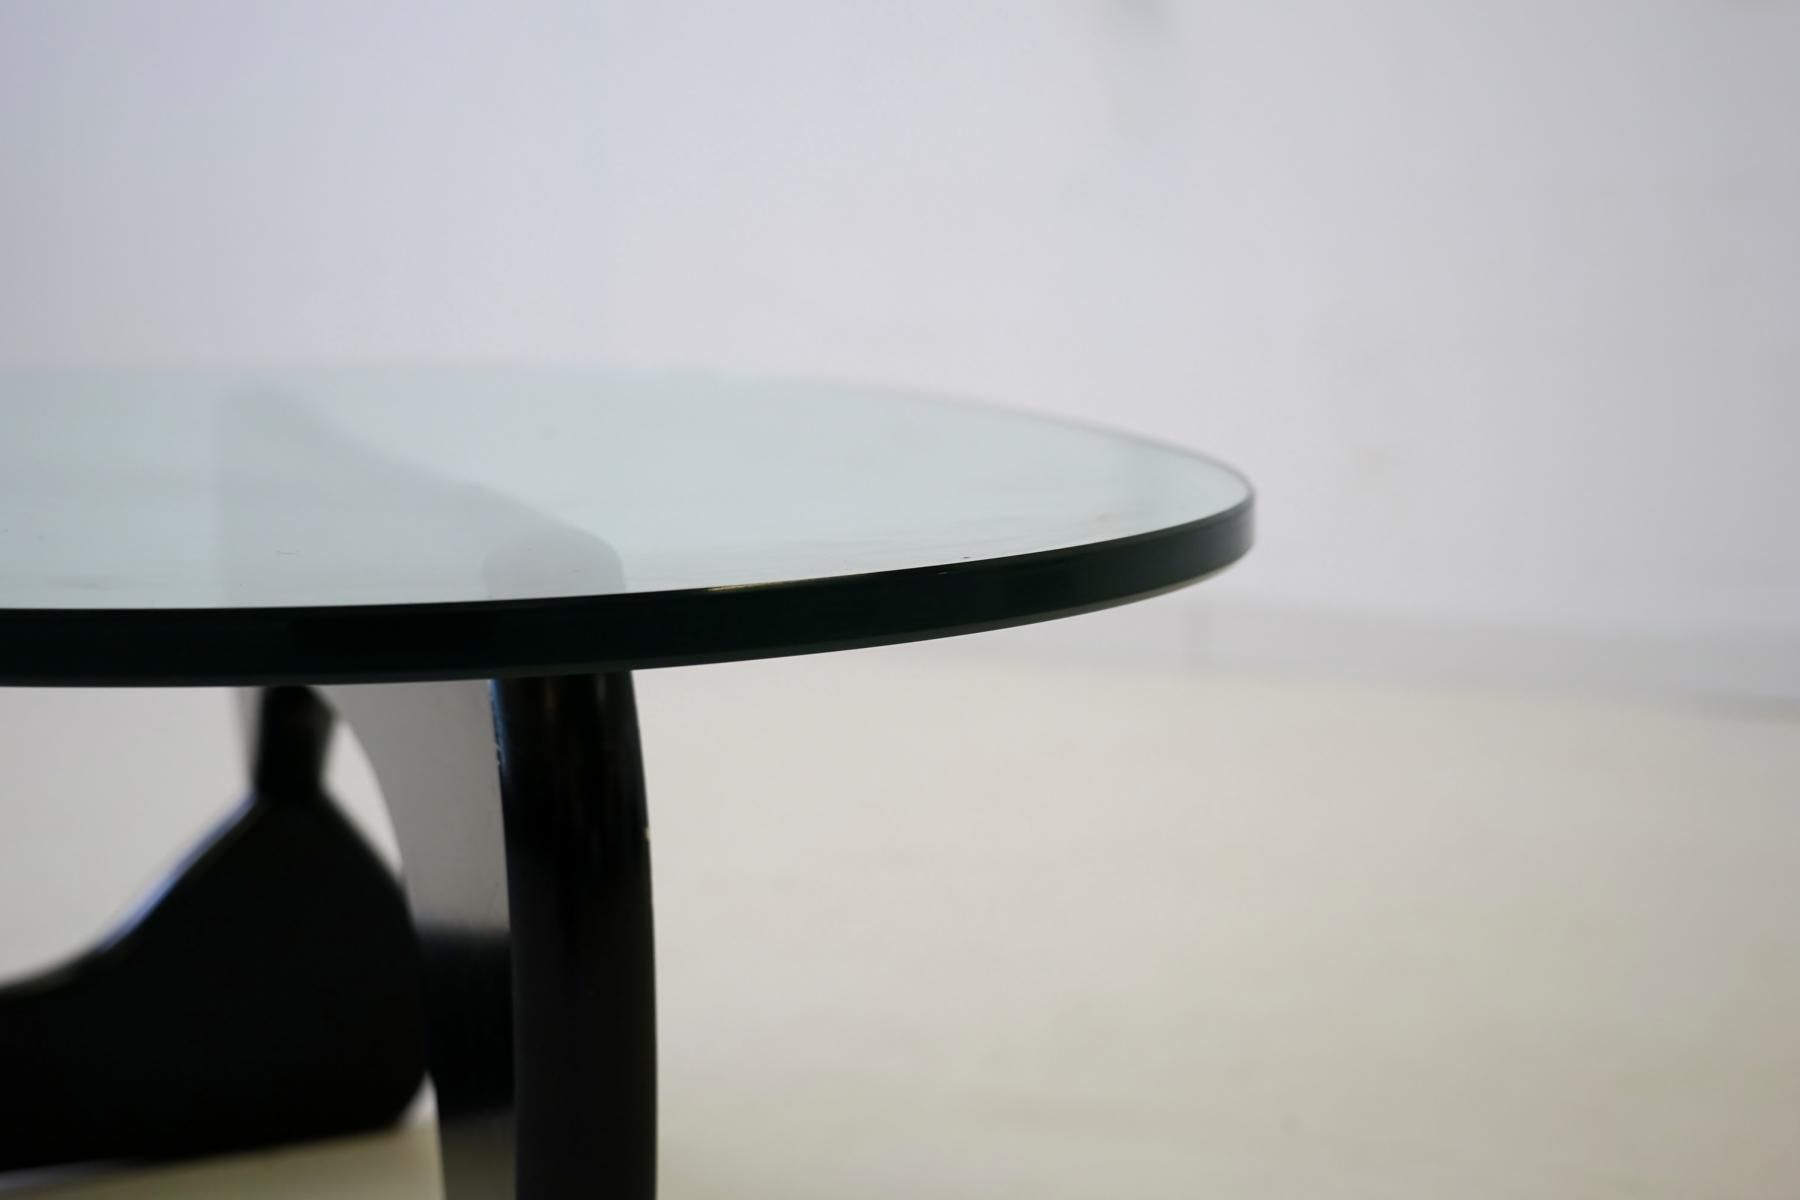 table basse en verre par isamu noguchi pour herman miller. Black Bedroom Furniture Sets. Home Design Ideas